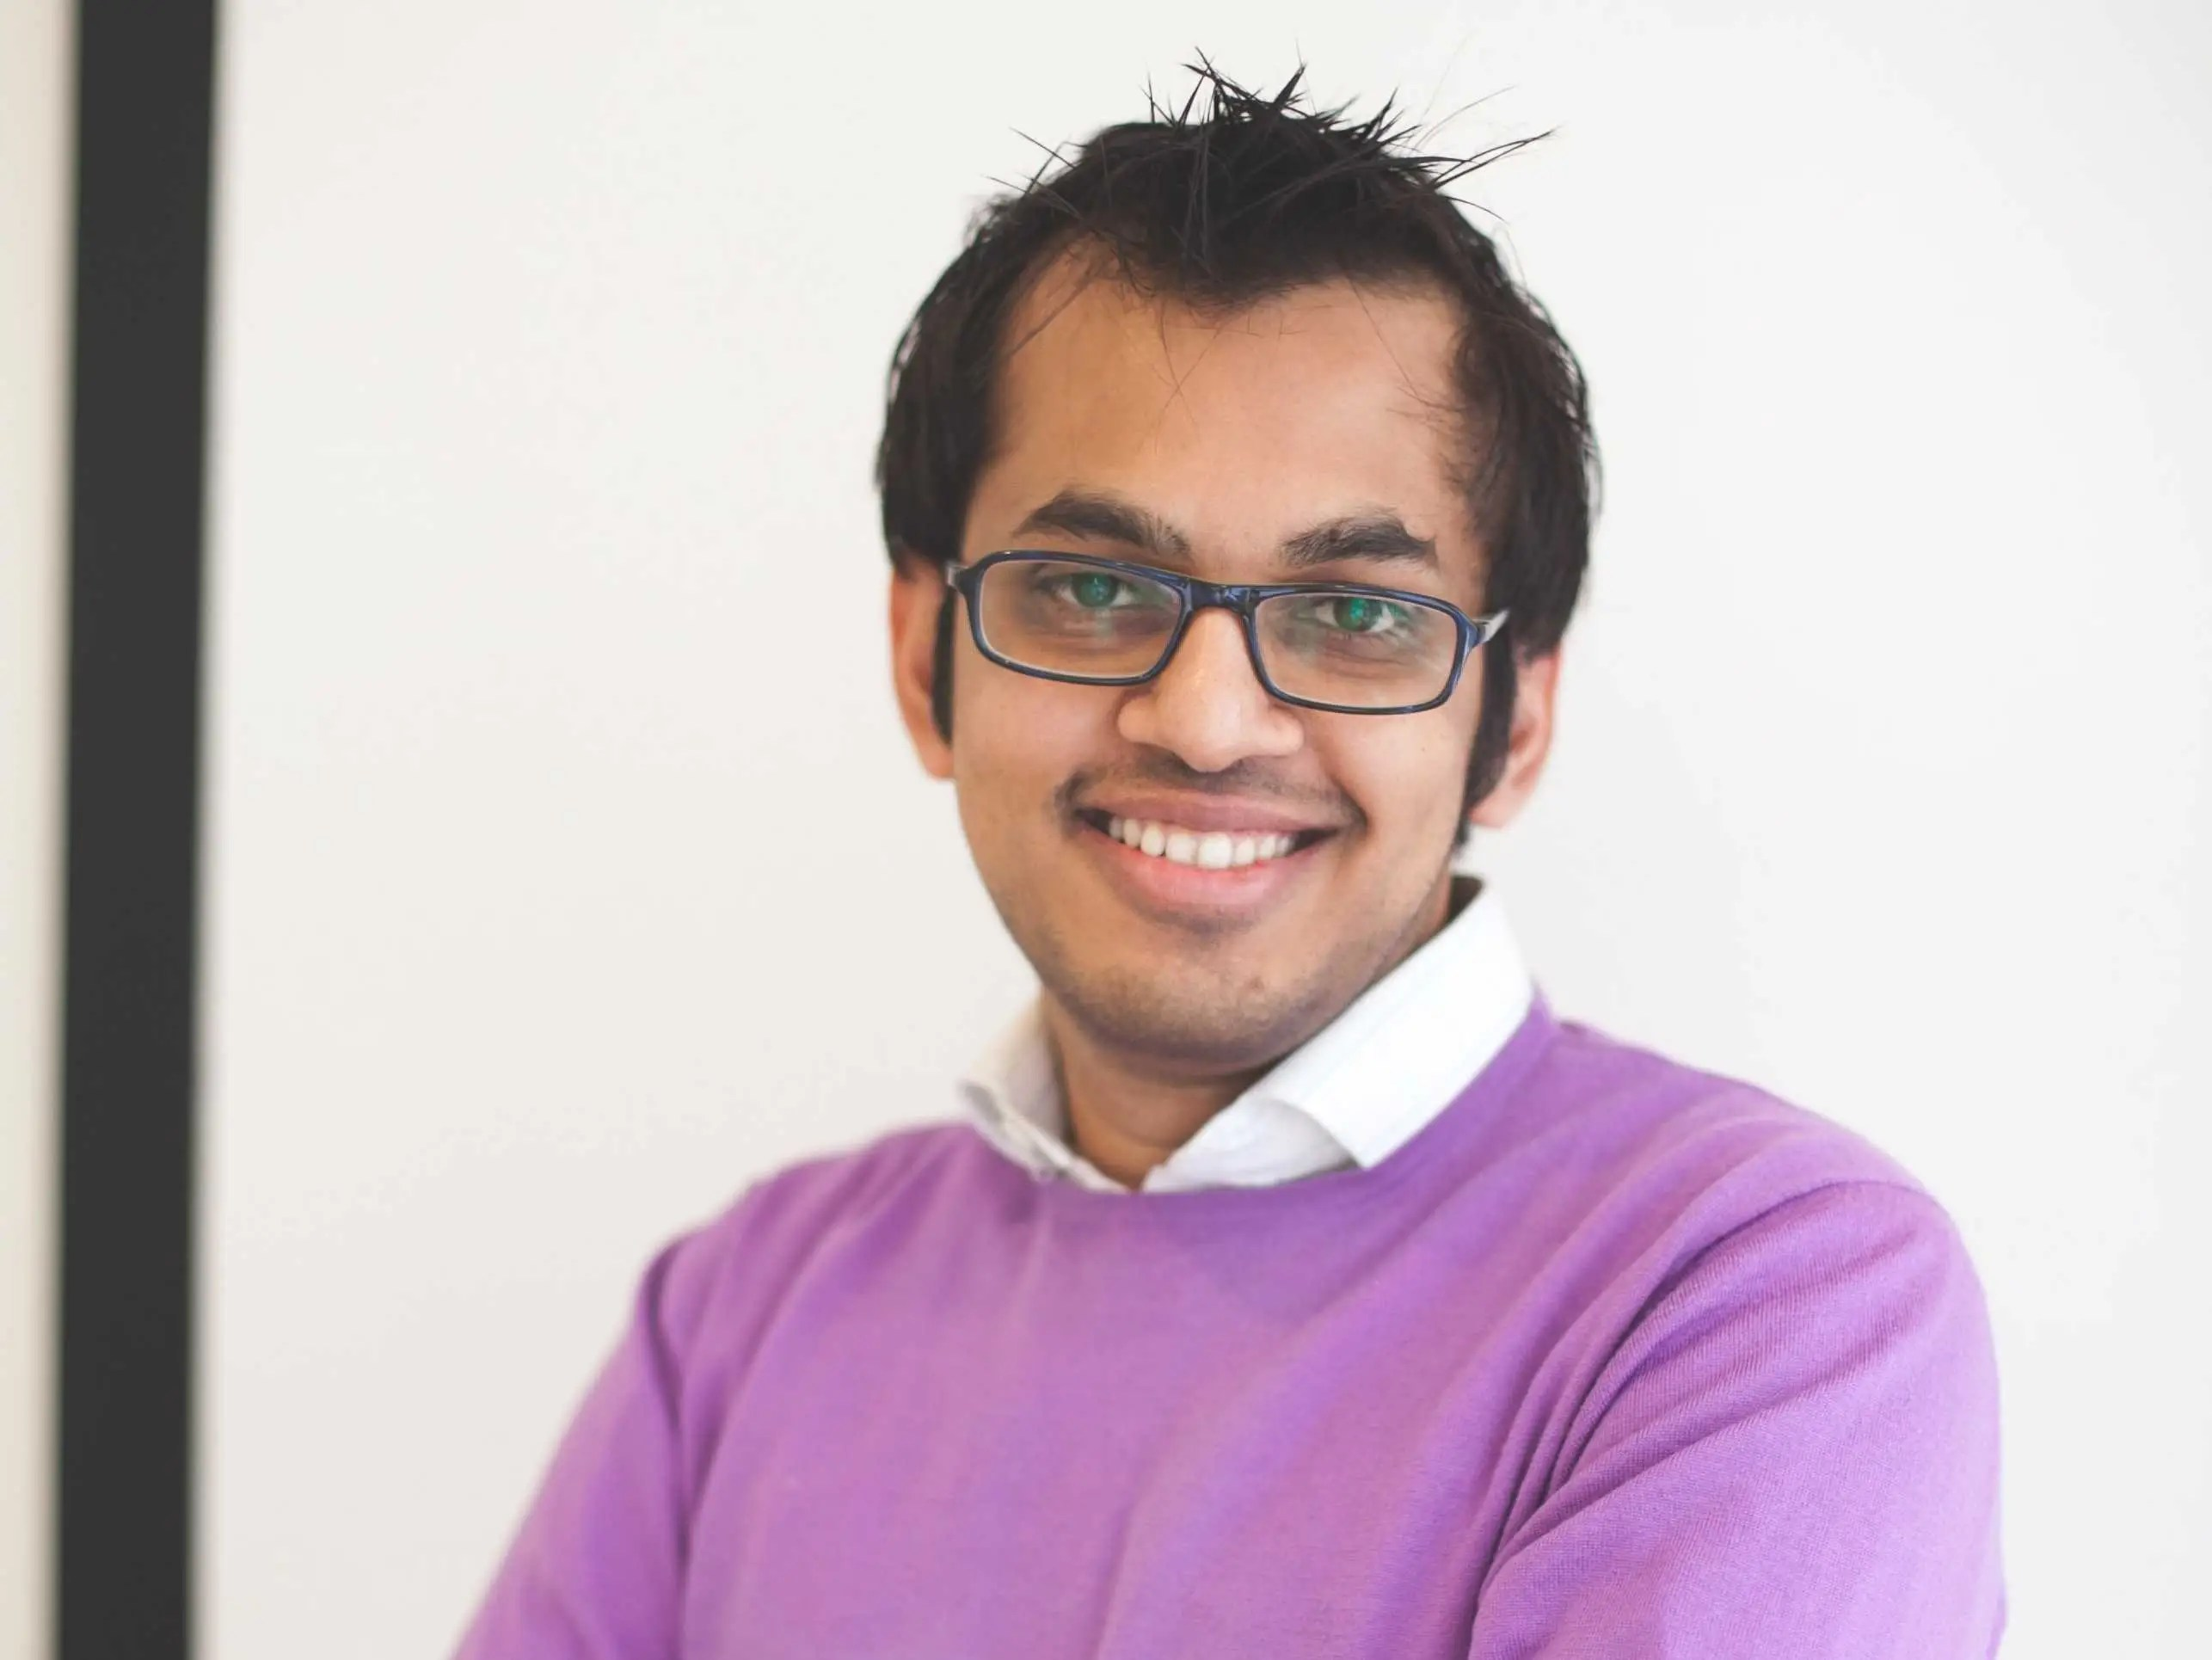 Shafqat Islam, CEO and co-founder, Newscred